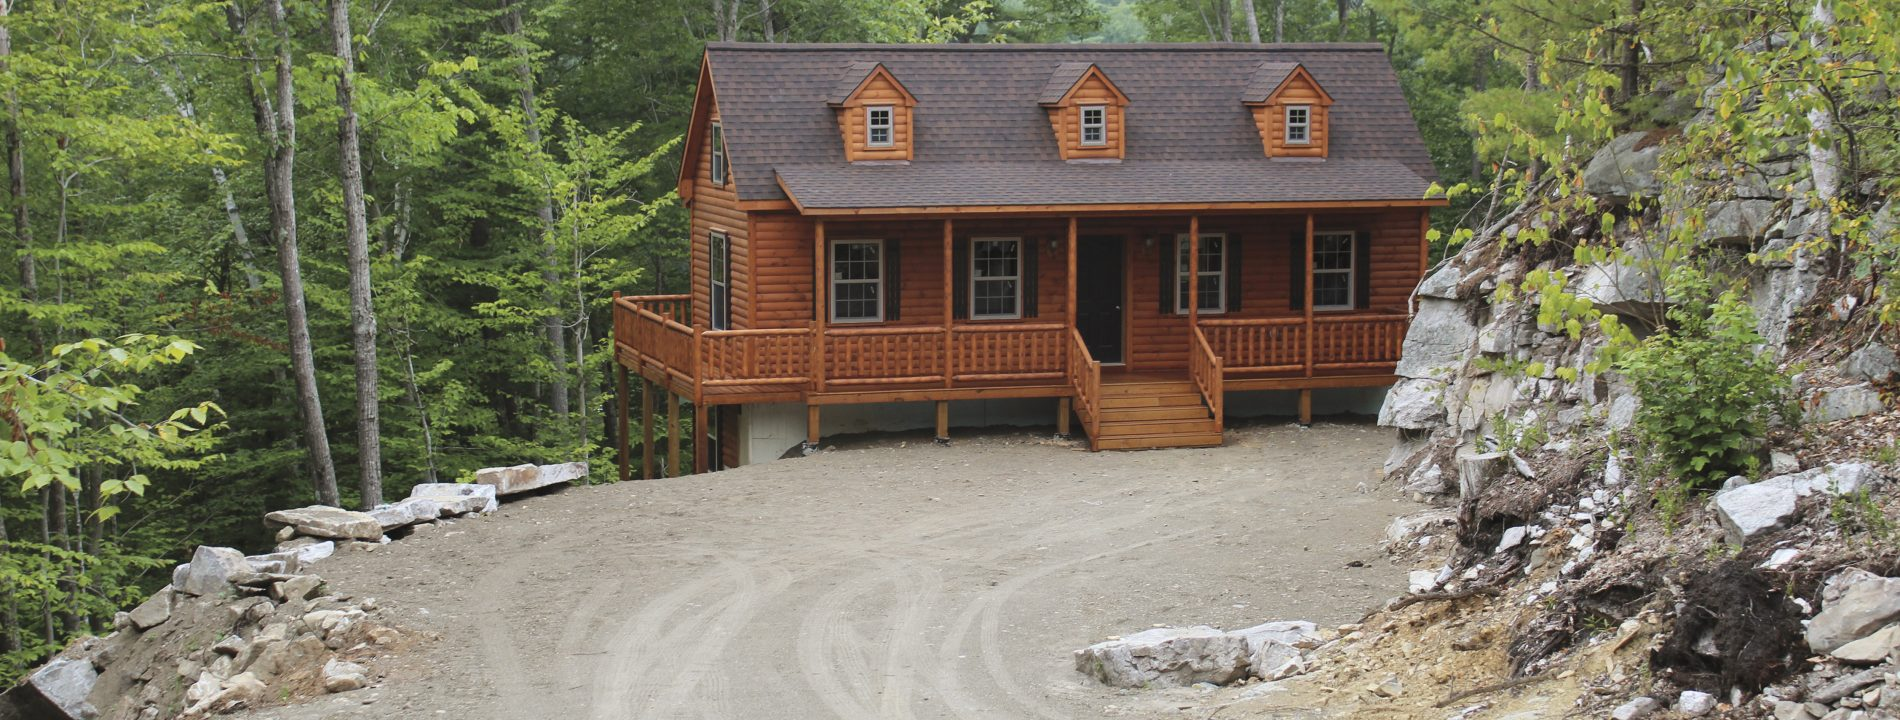 Cape cod cabin cape cod log homes zook cabins for Cape style homes for sale